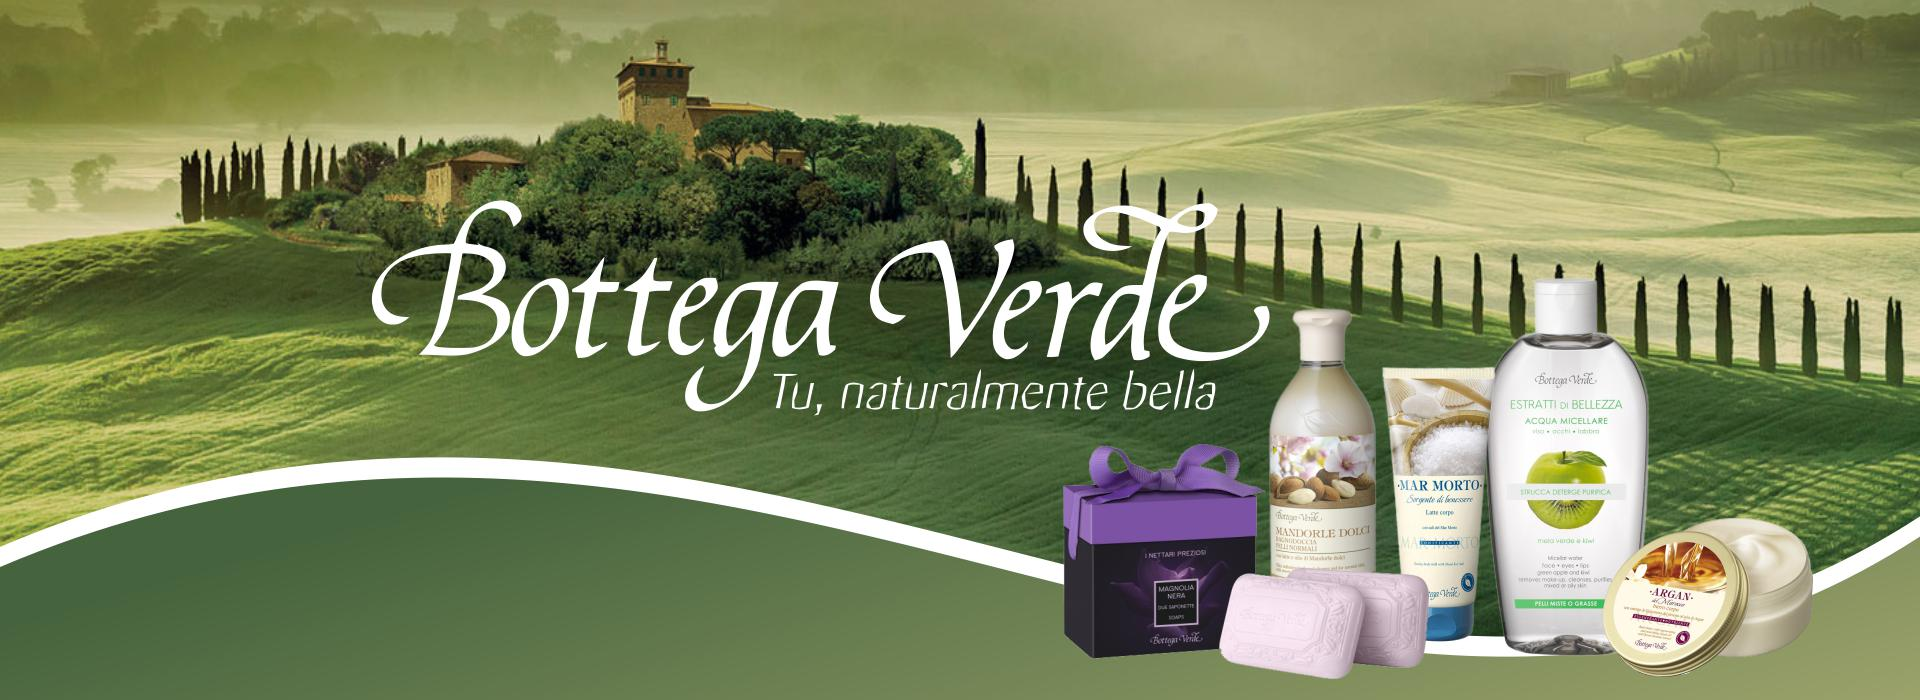 bottega verde naturalmente belle desktop